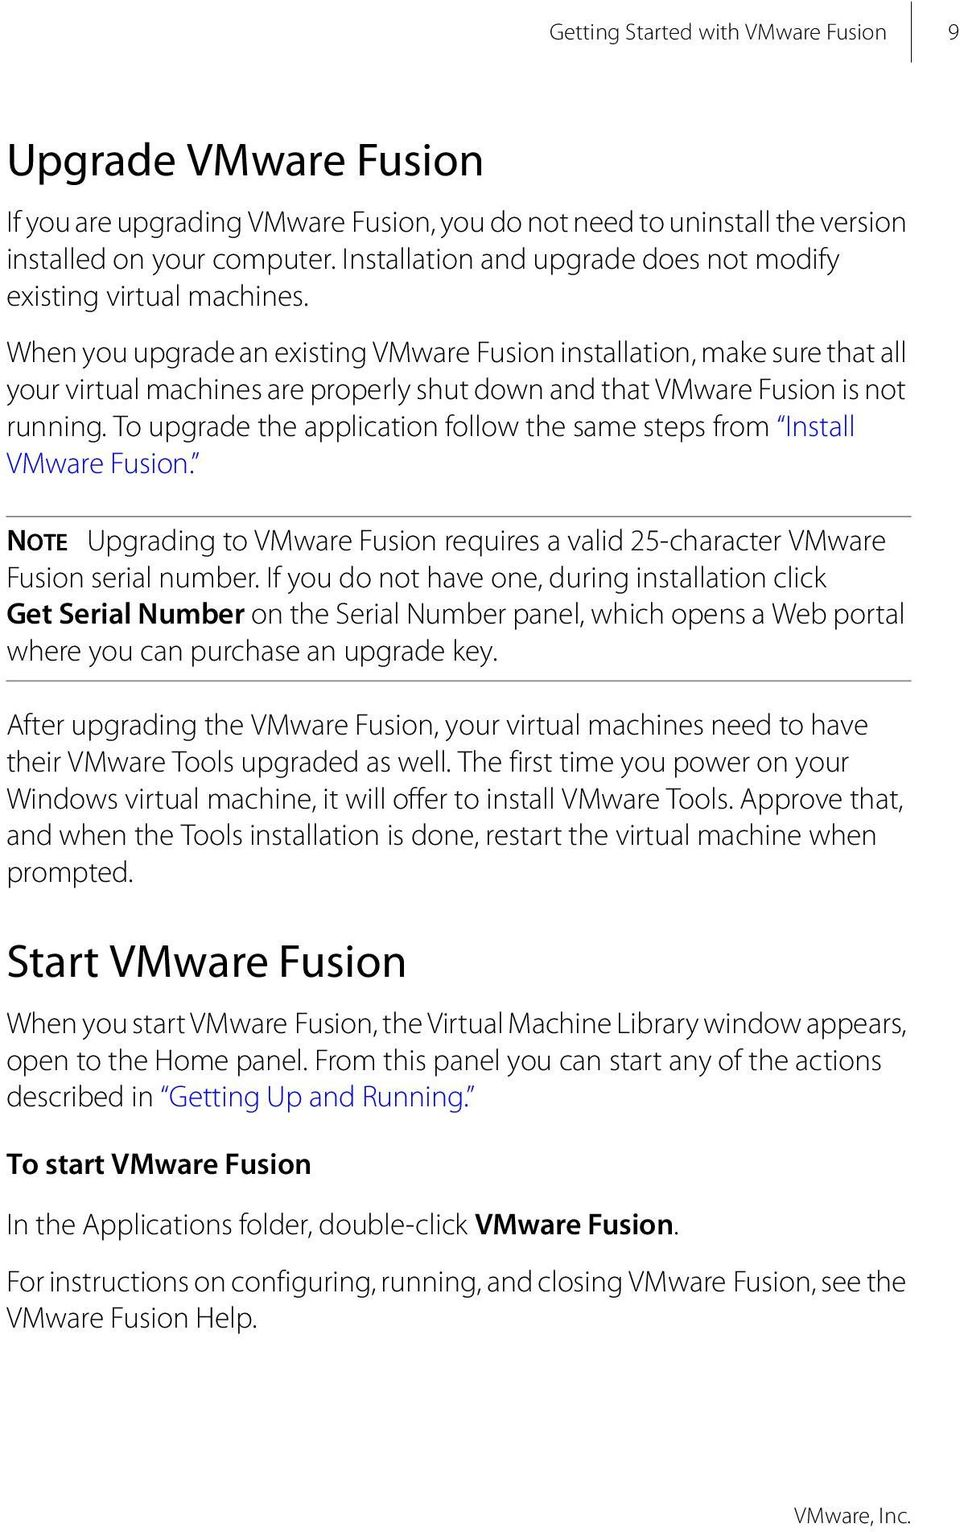 Getting Started with VMware Fusion  VMware Fusion for Mac OS